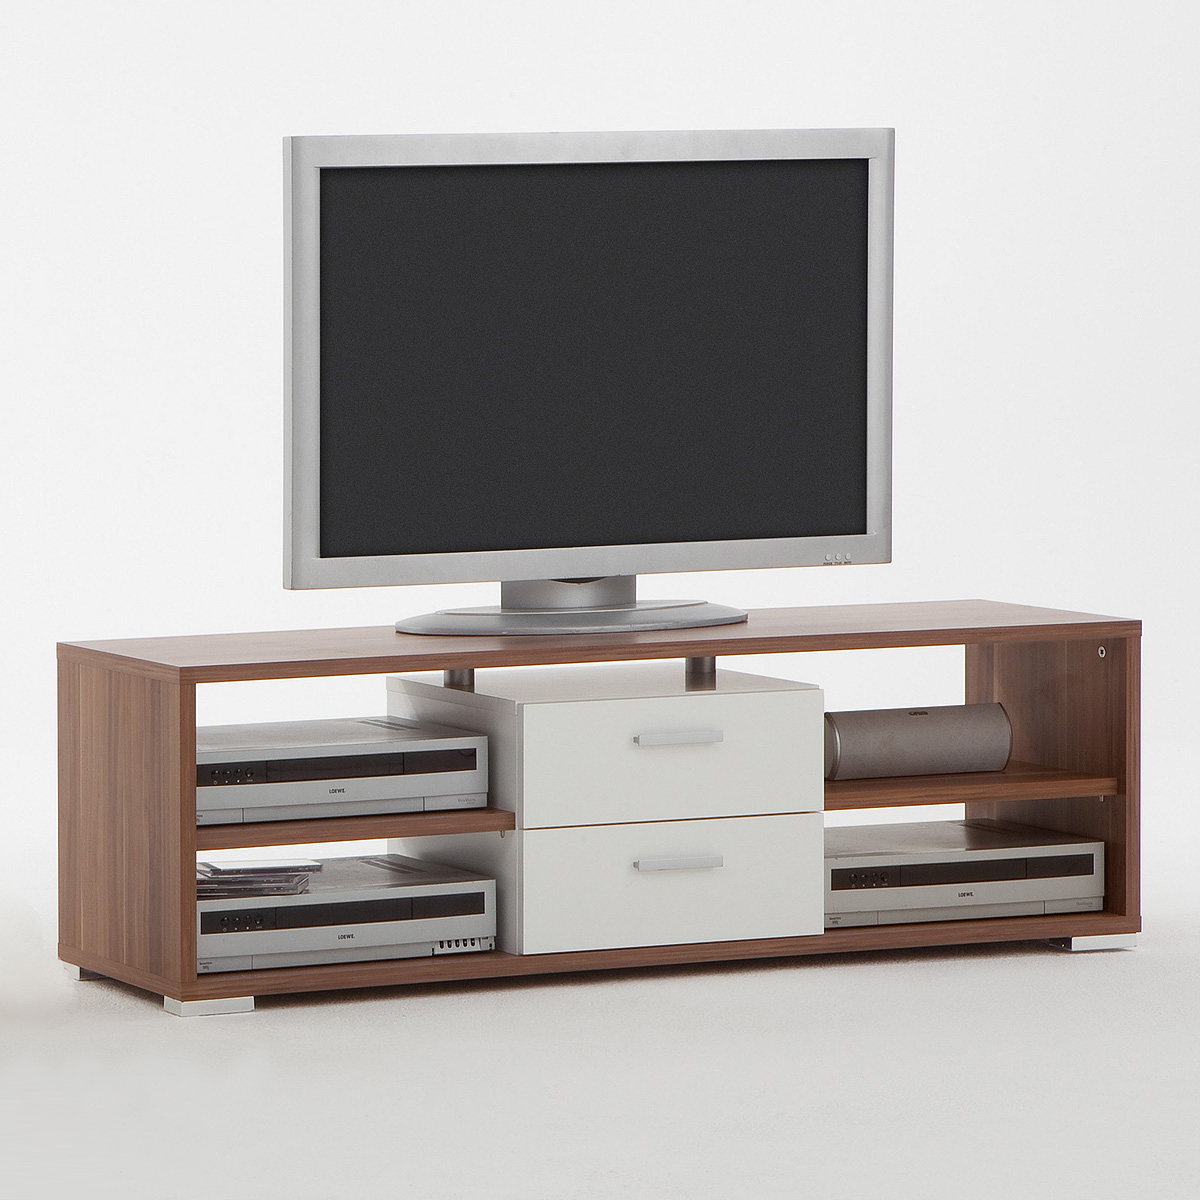 tv board nemo lowboard tv regal unterschrank tv hifi element in nussbaum wei ebay. Black Bedroom Furniture Sets. Home Design Ideas